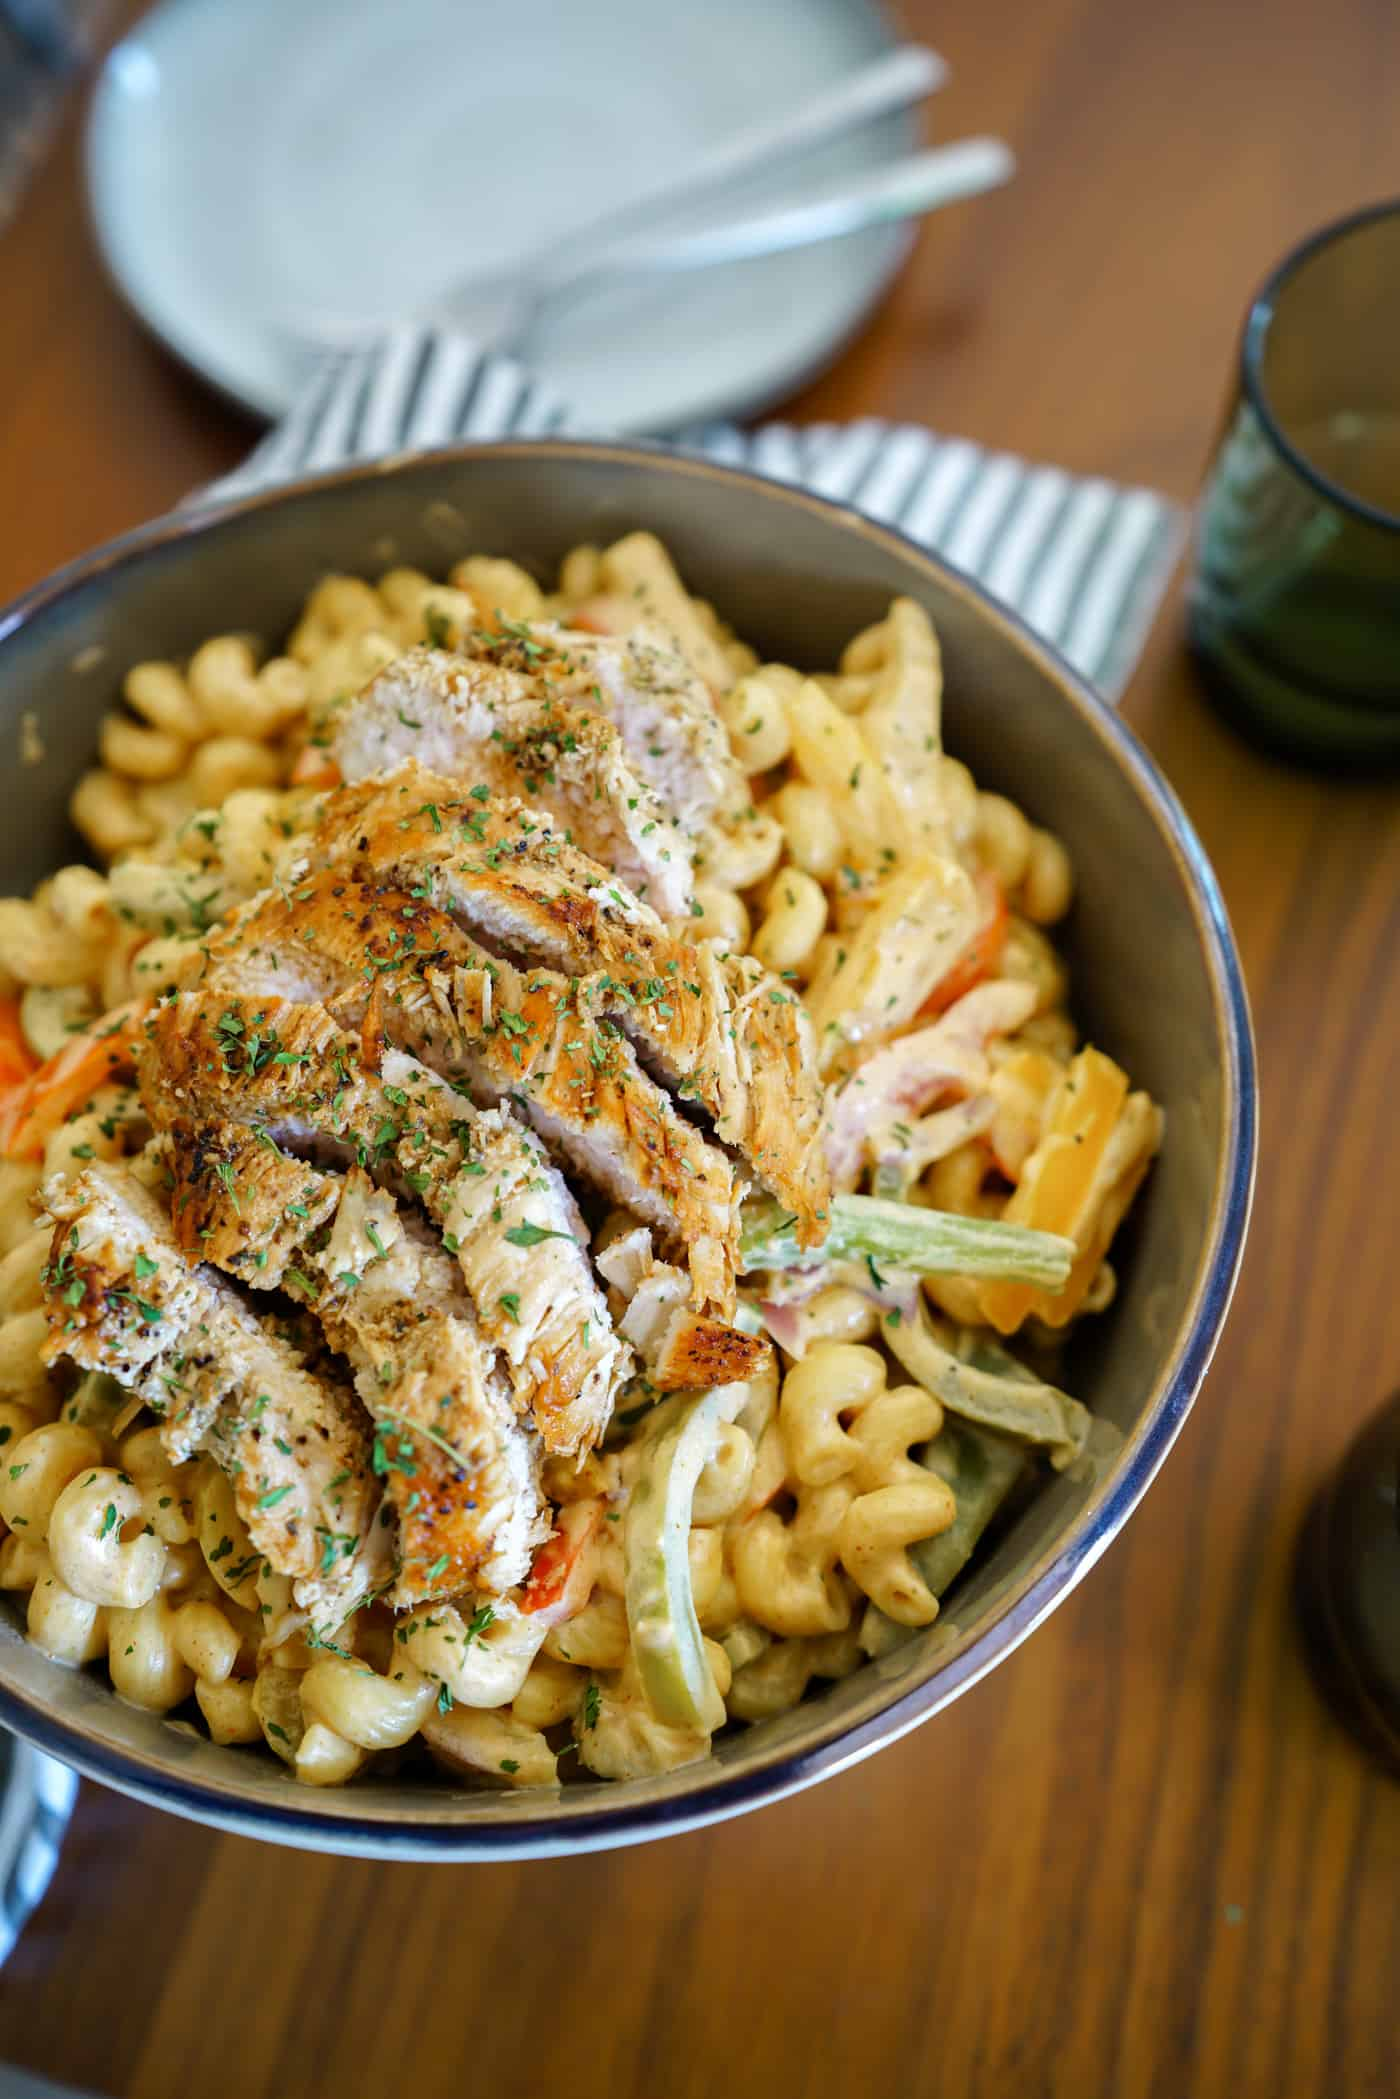 A large bowl of Instant Pot Chicken Fajita Pasta with bell pwppers and onions.